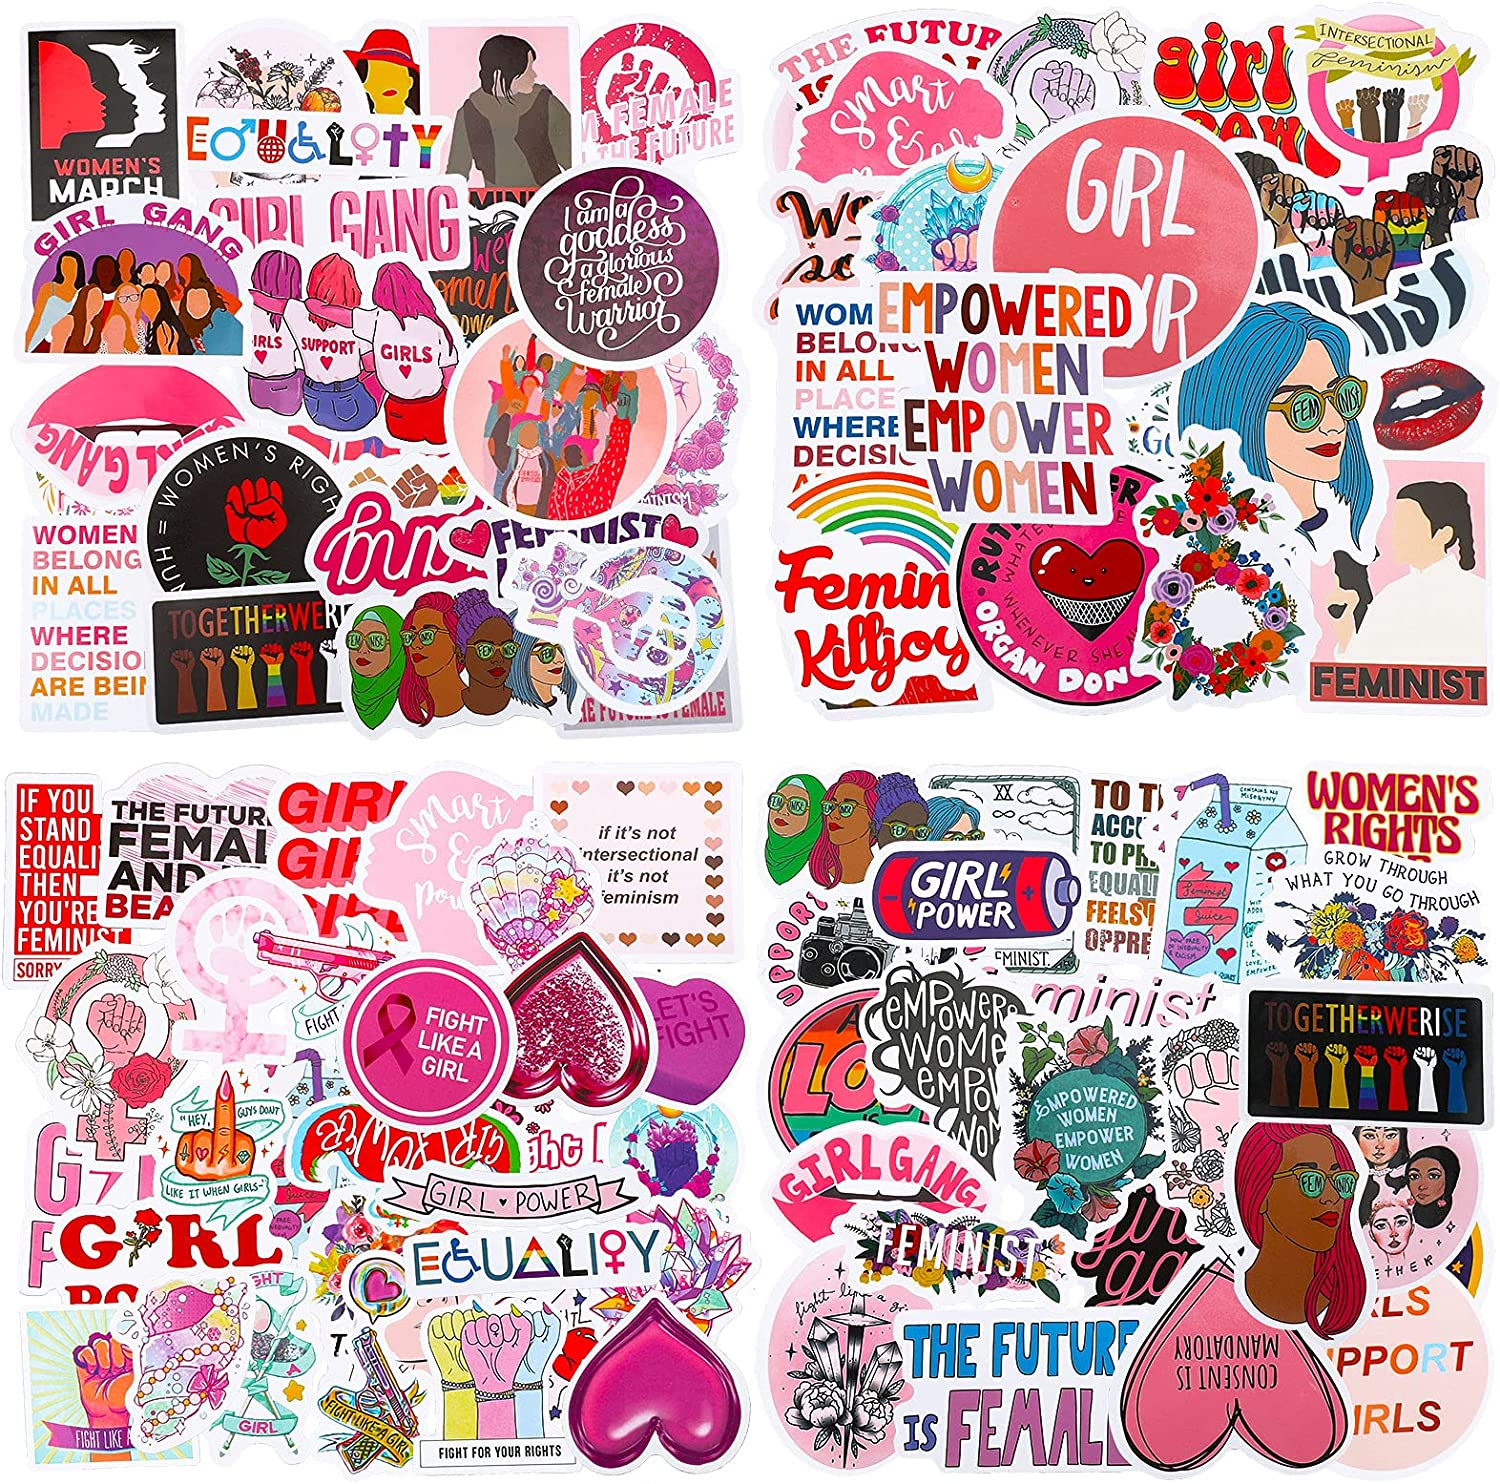 150 Pieces Feminist Stickers Women Empowerment Stickers Breast Cancer Awareness Stickers Feminism Stickers Waterproof Girls Graffiti Vinyl Stickers for Water Bottles, Phone, Computer, Luggage, Guitar